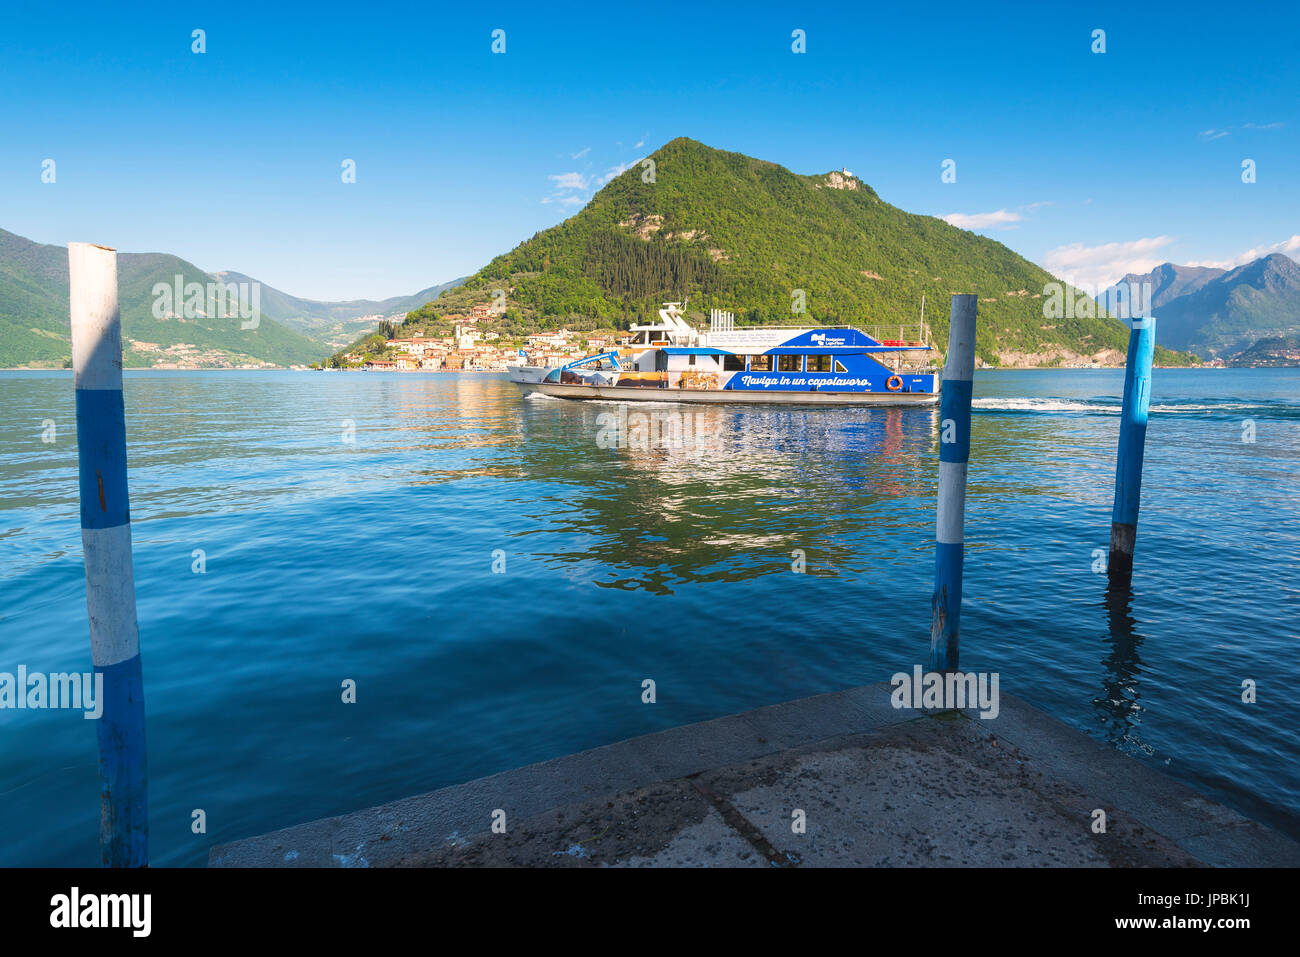 Montisola and Iseo lake, Brescia province, Lombardy district, Italy, Europe - Stock Image